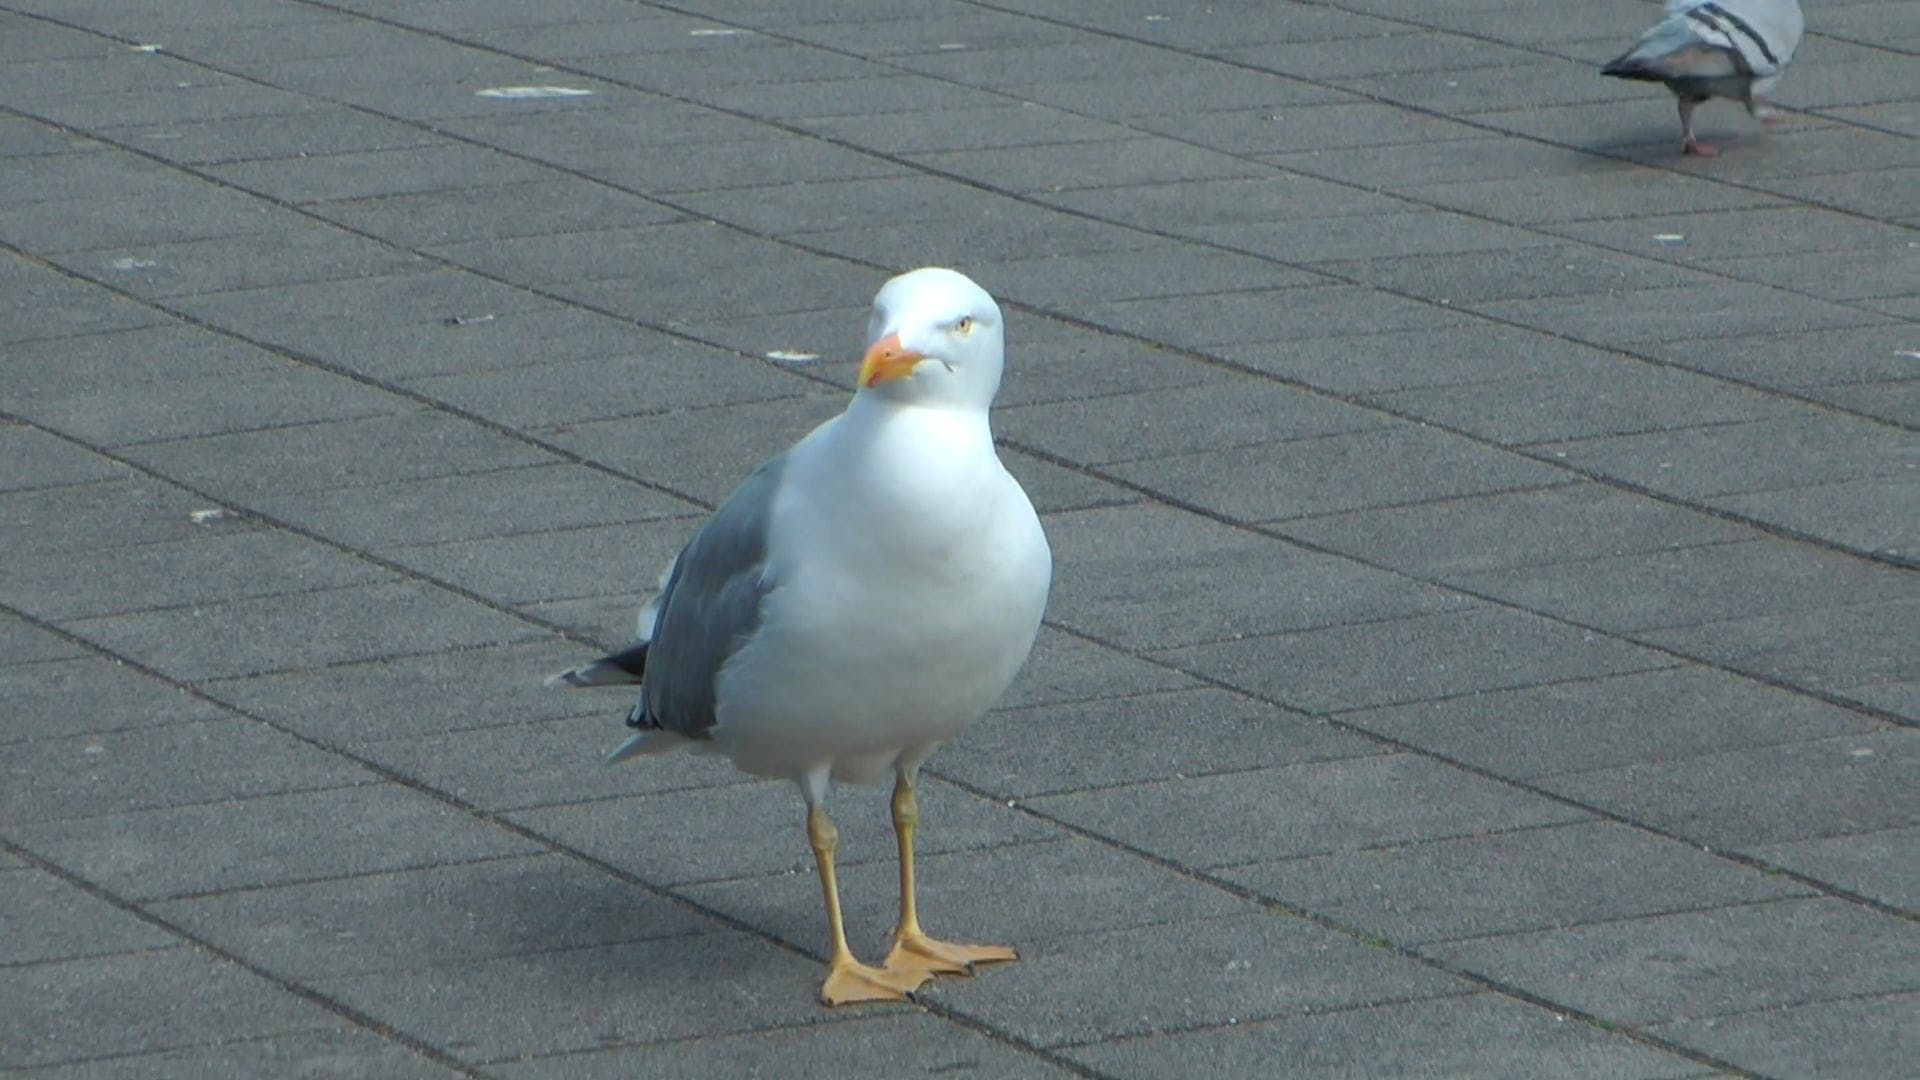 CLose-Up Video of Seagull